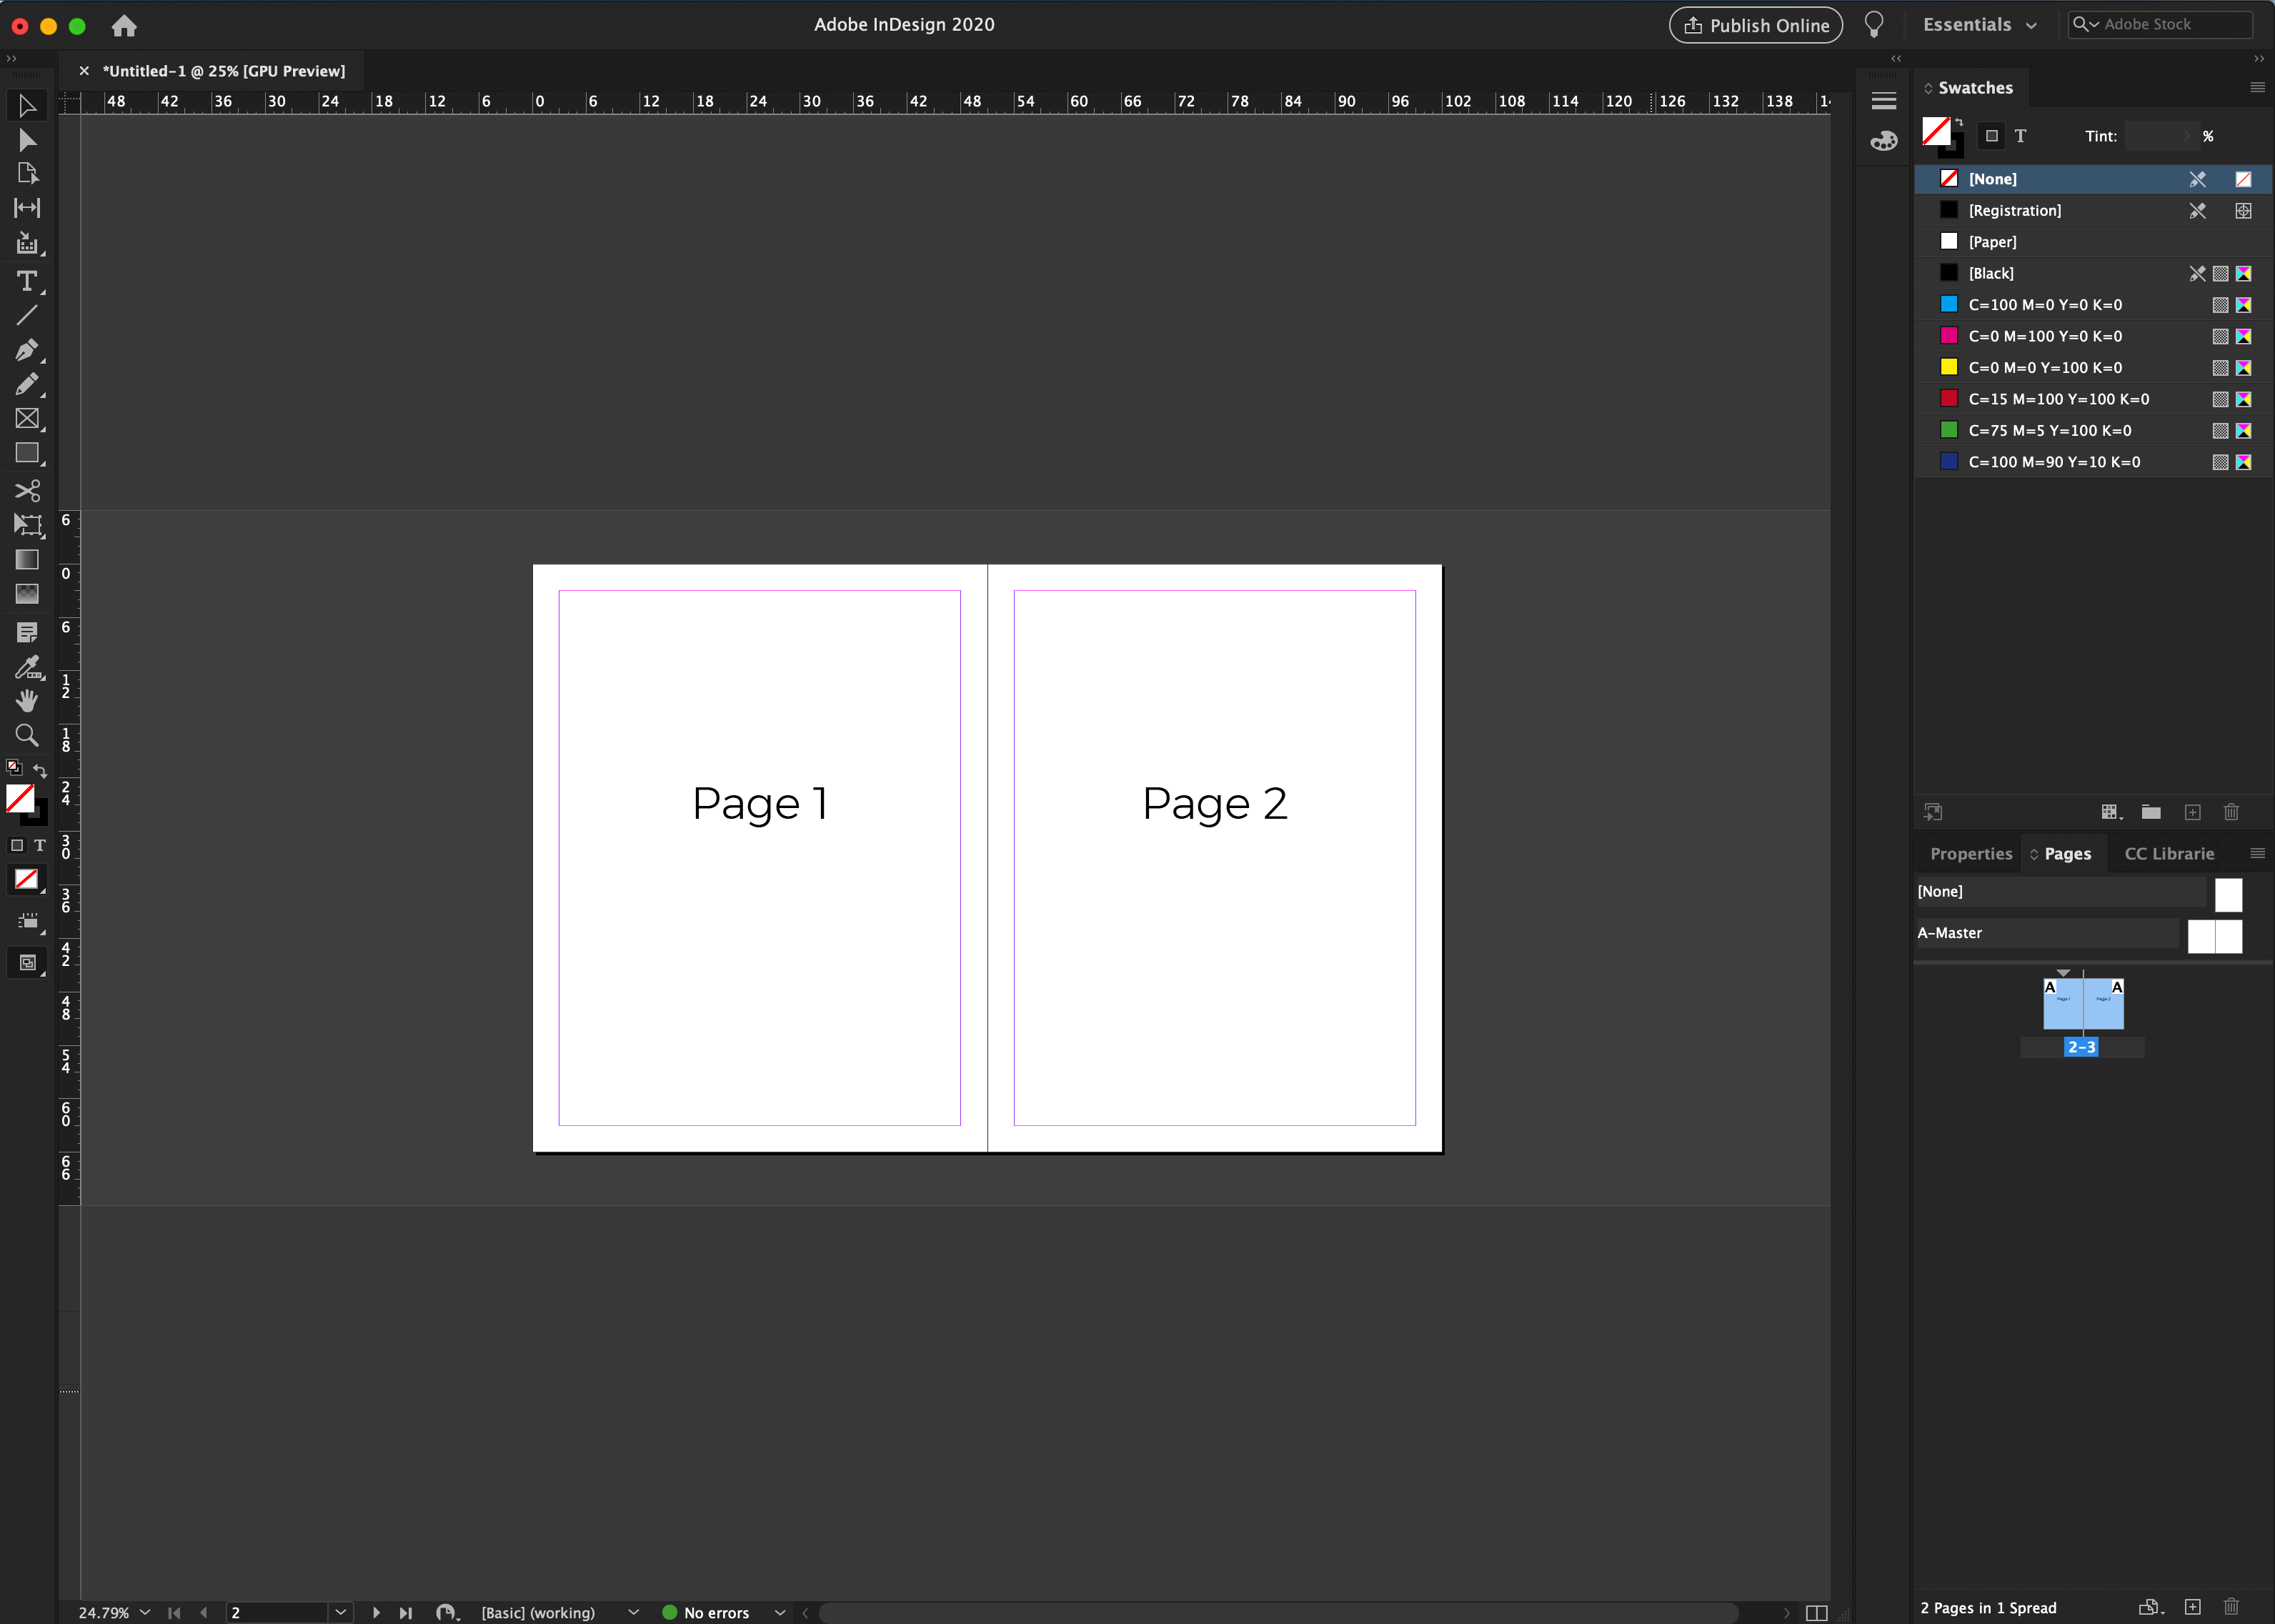 inDesign 2 page spread